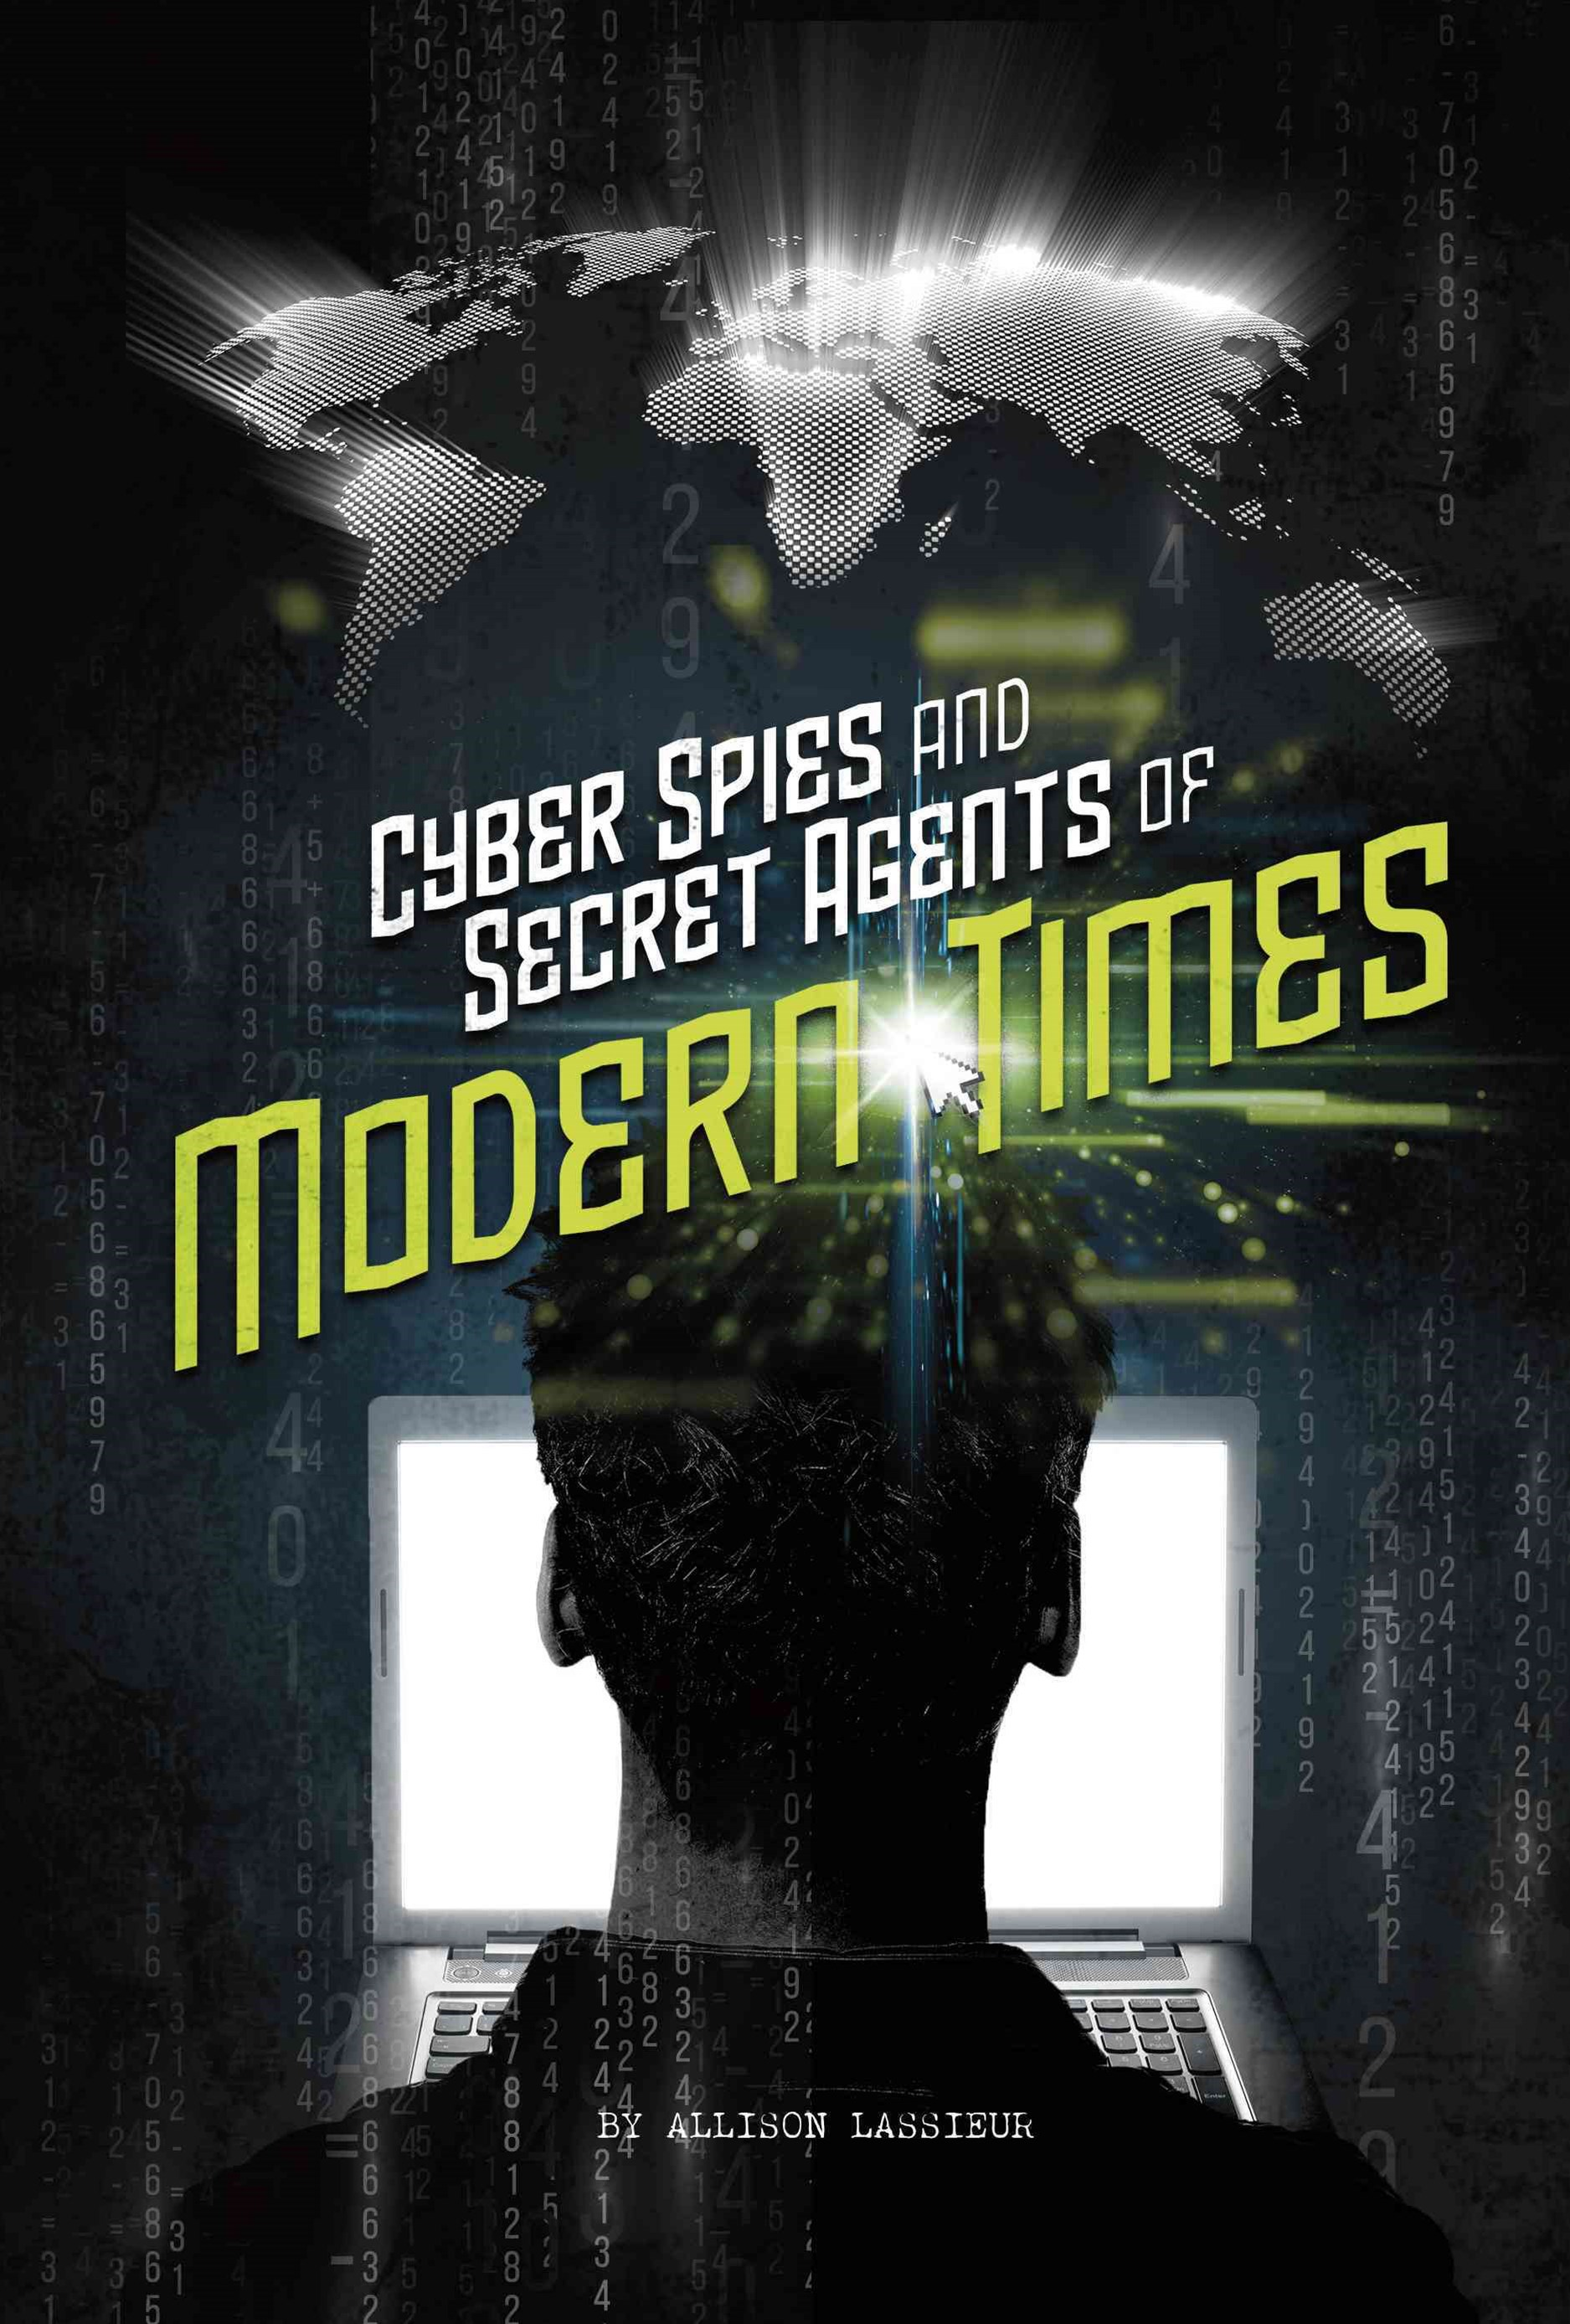 Spies!: Cyber Spies and Secret Agents of Modern Times